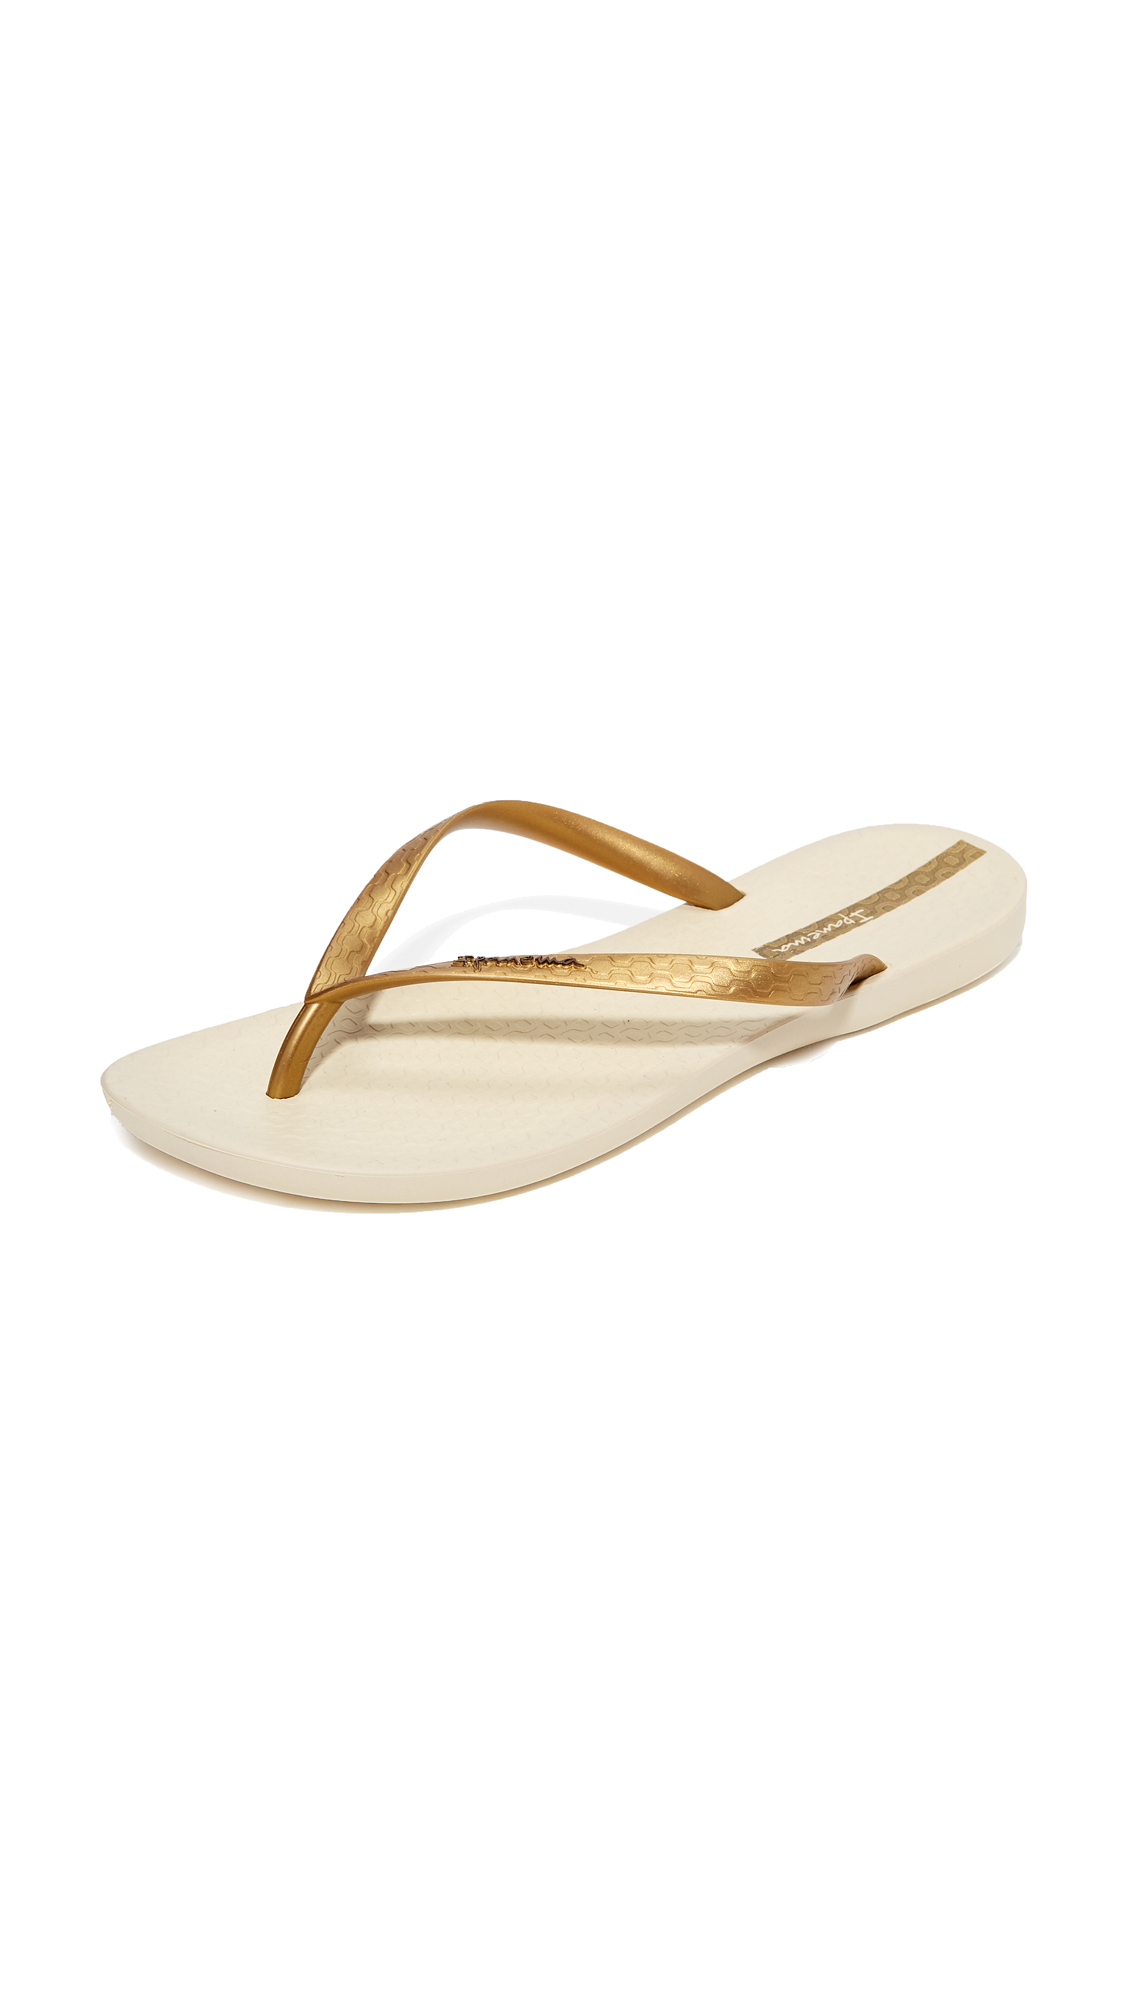 Ipanema Wave Essence Flip Flops - Beige/Gold